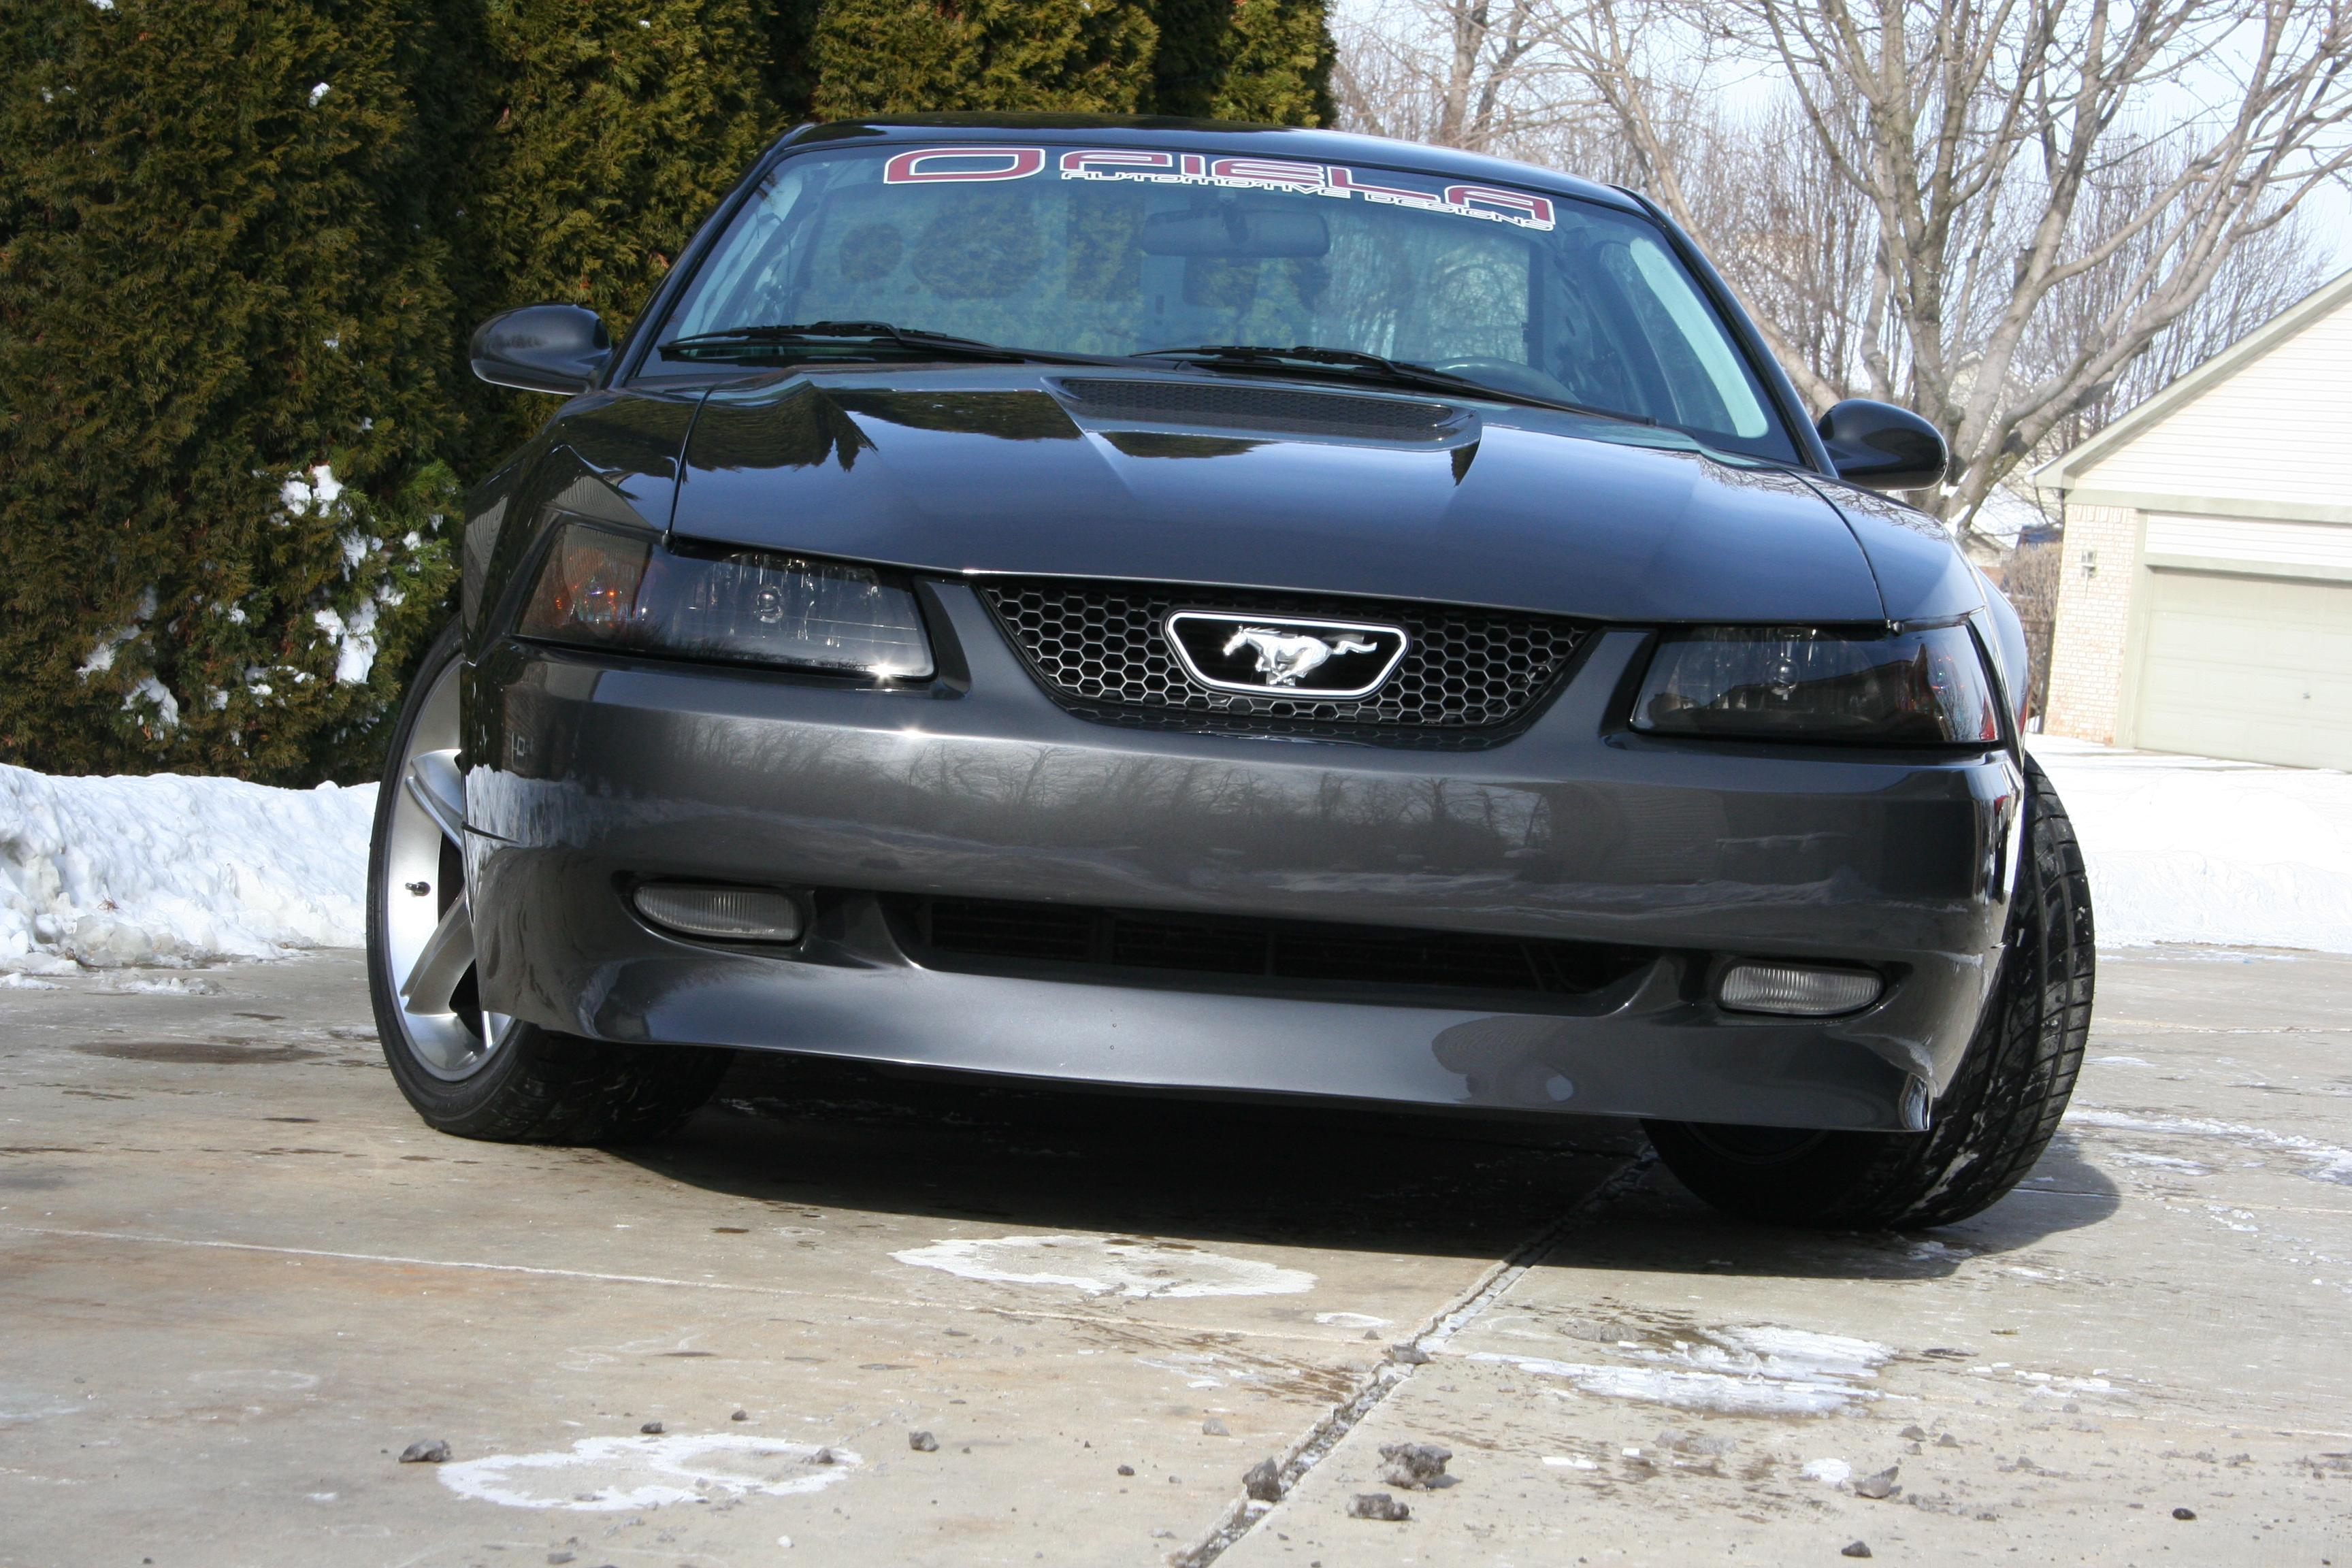 OpielaAutomotive 2000 Ford Mustang